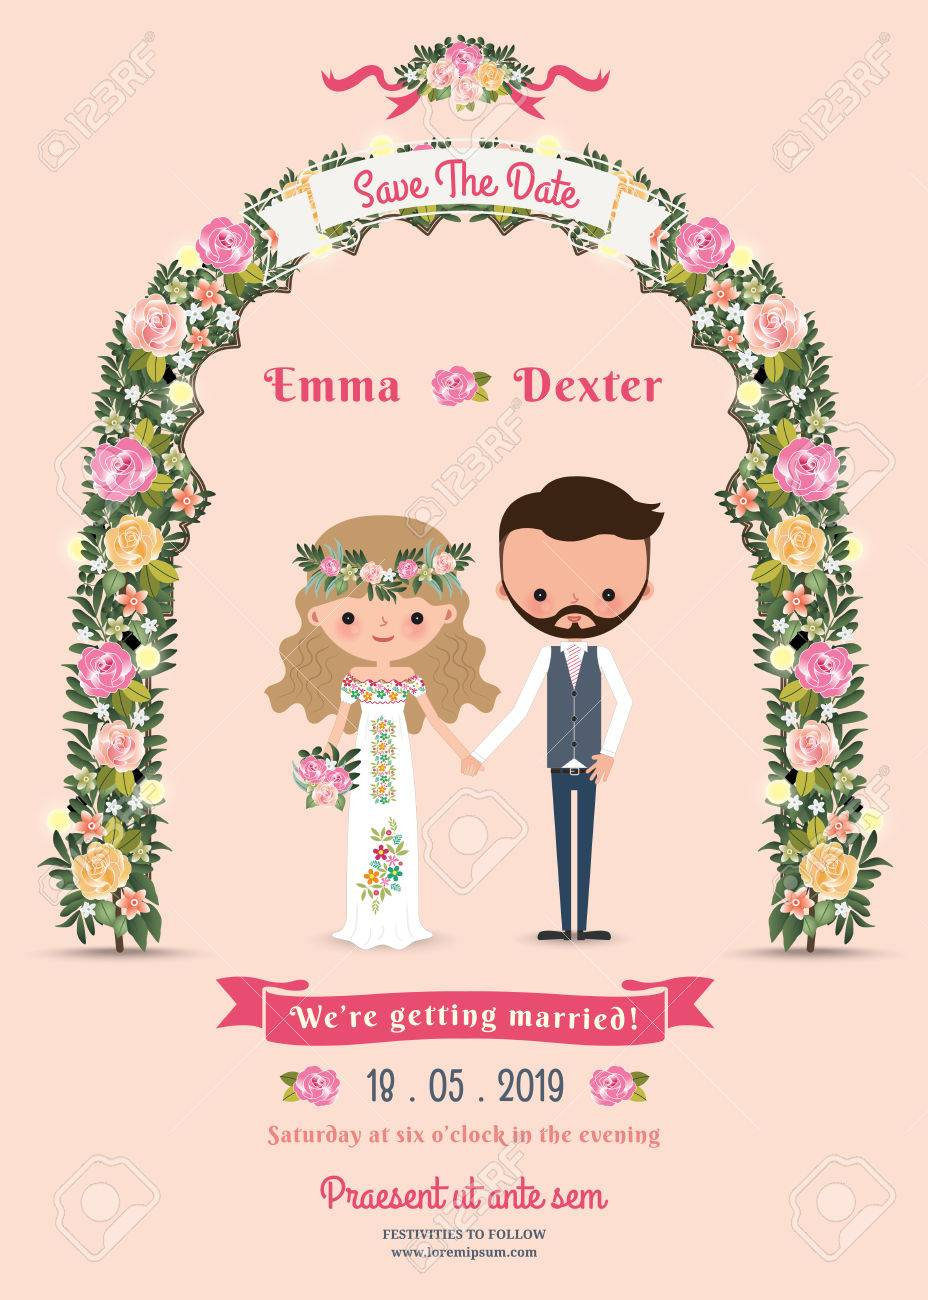 Rustic Blossom Flowers Cartoon Couple Wedding Invitation Card On Pink Background Stock Vector